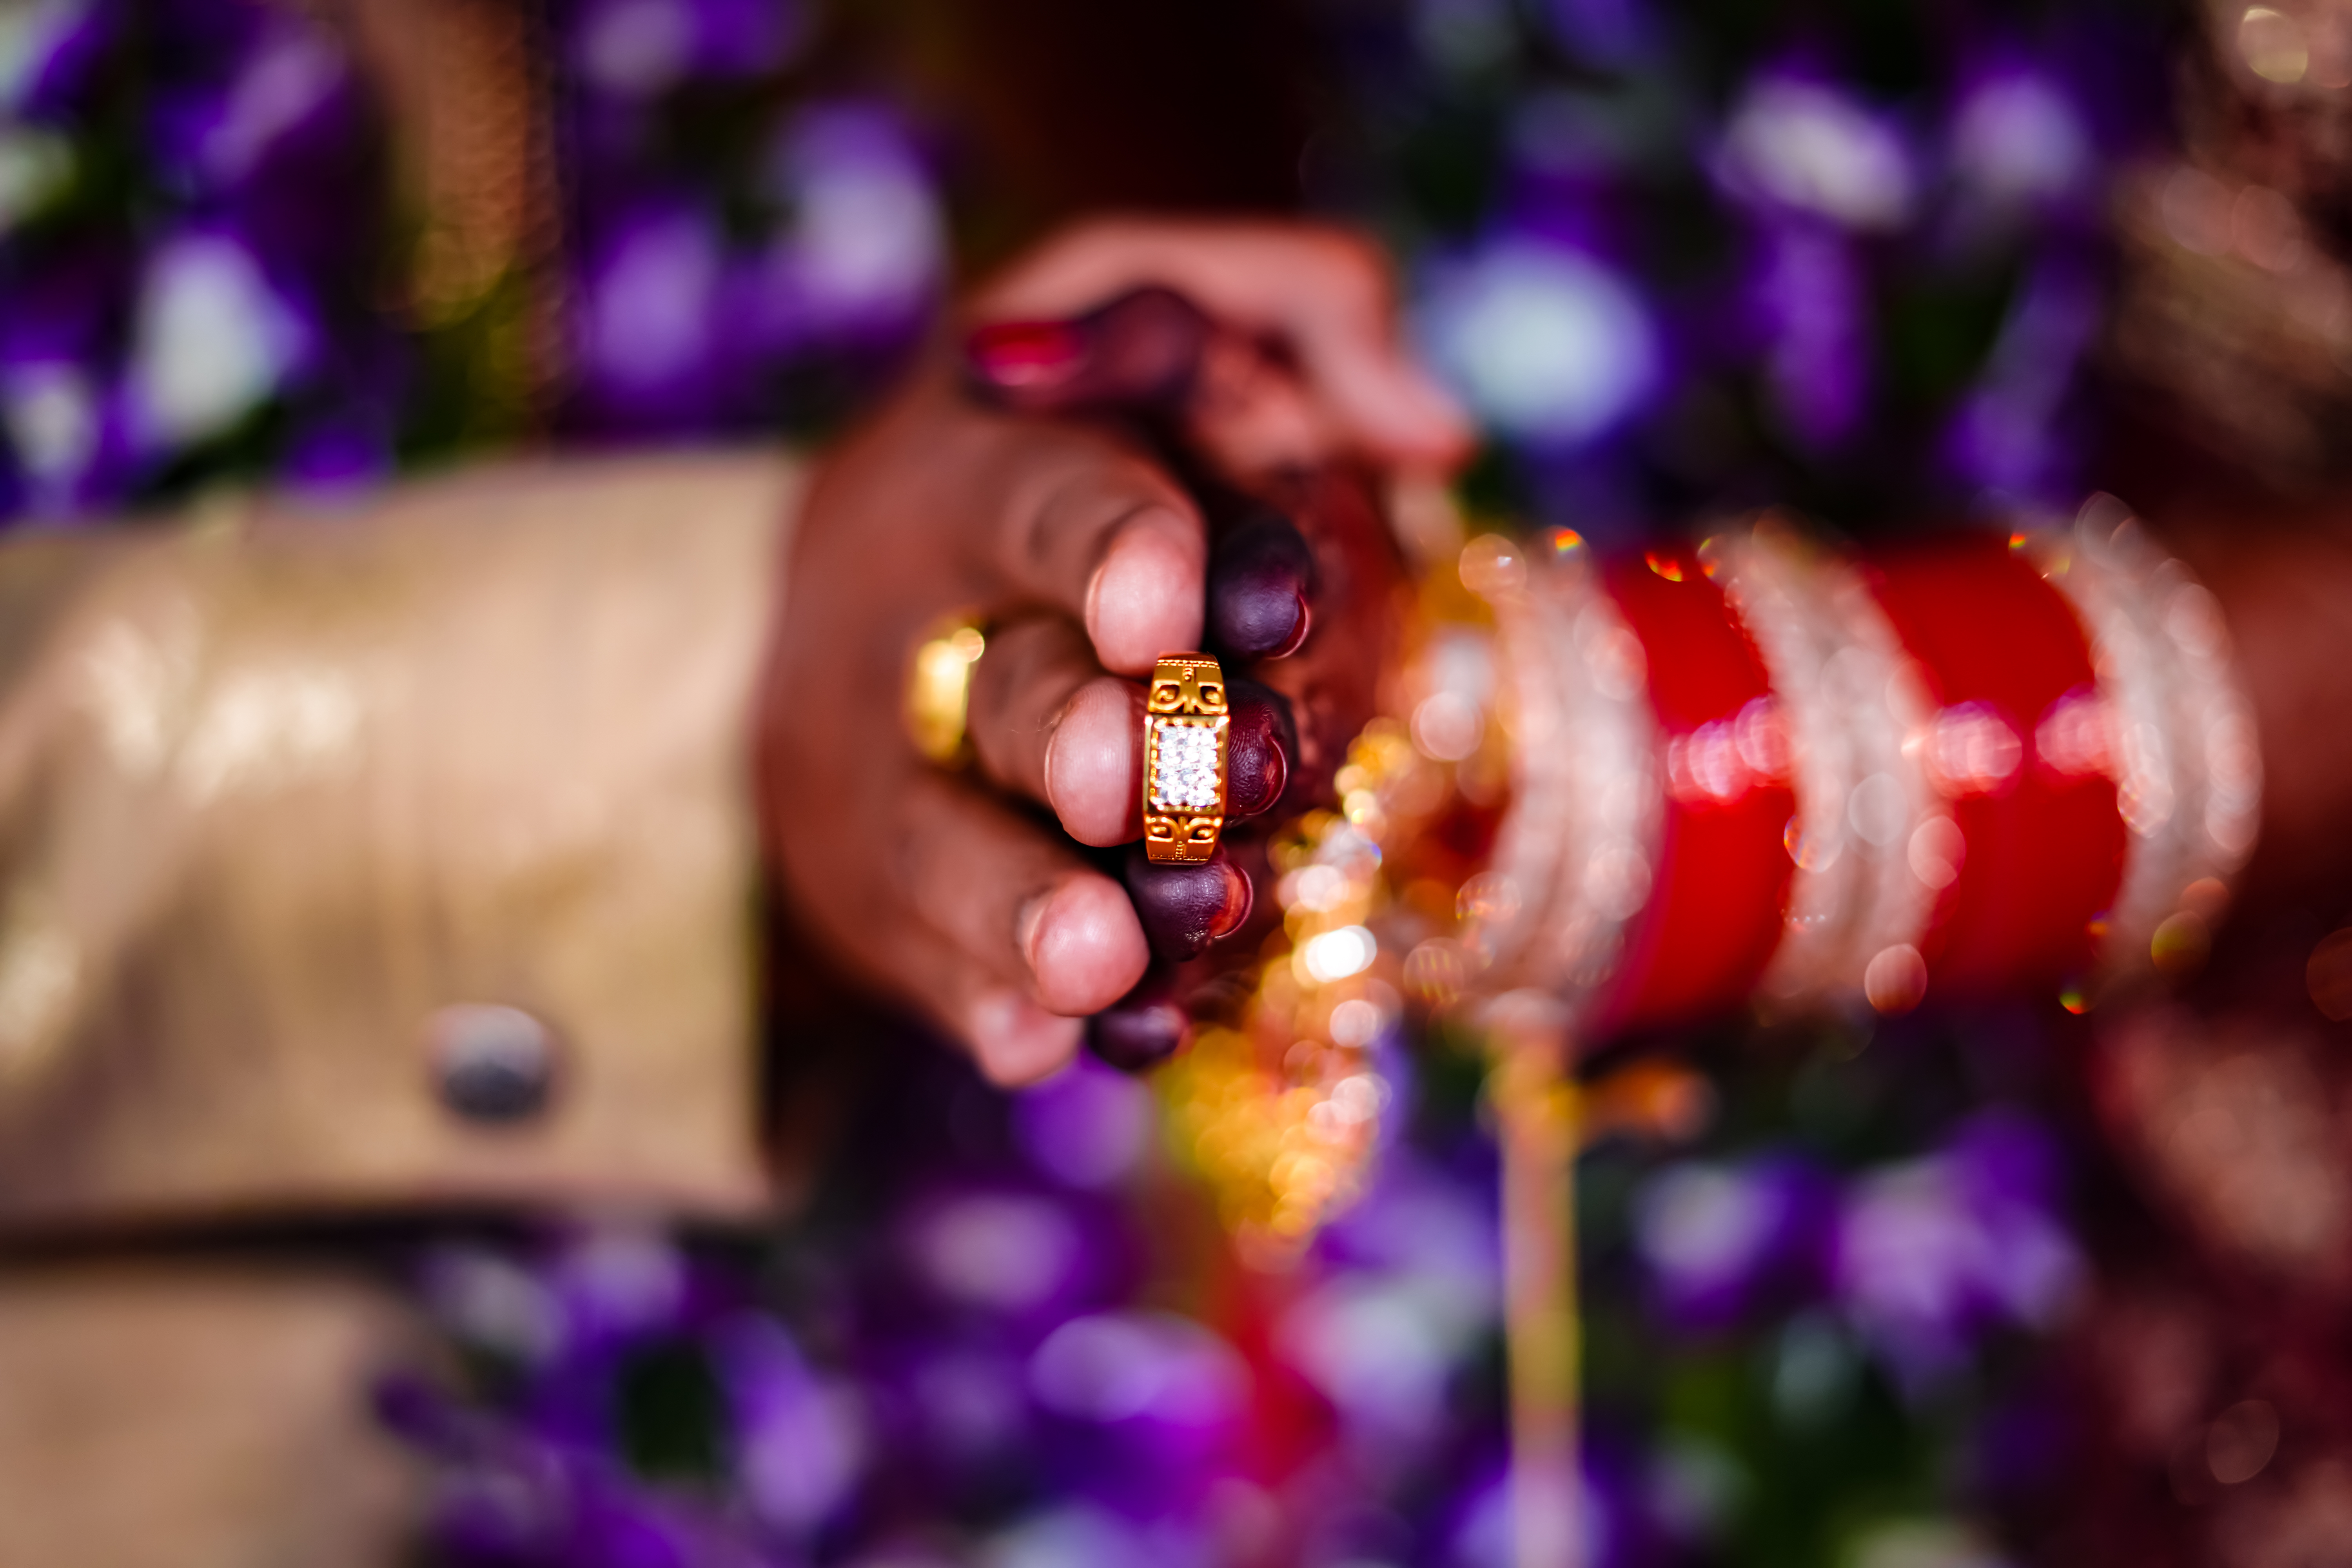 Get the wedding ring in your hand and get it photographed.